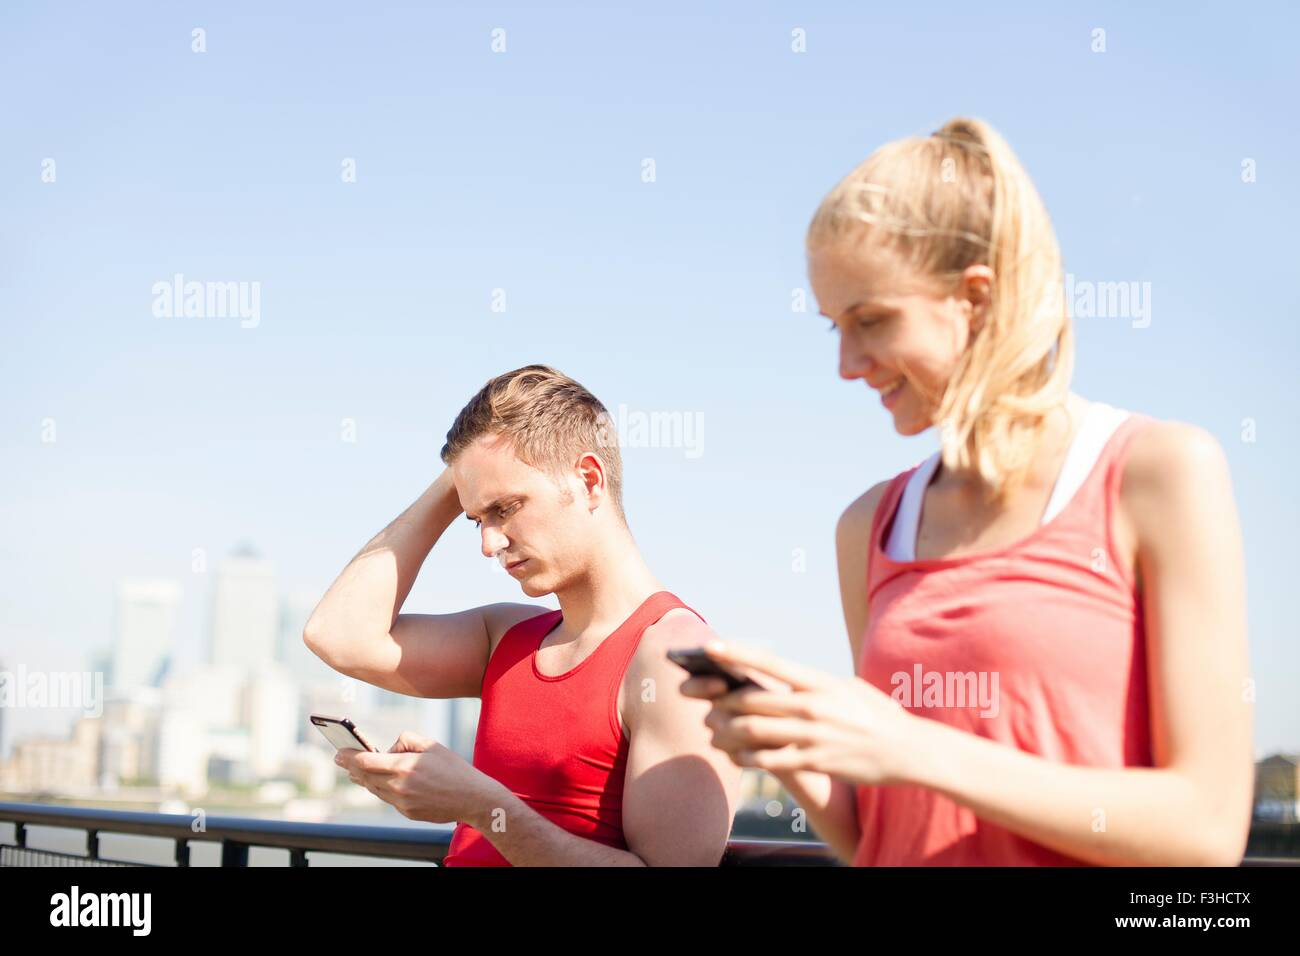 Runners using smartphone on bridge - Stock Image